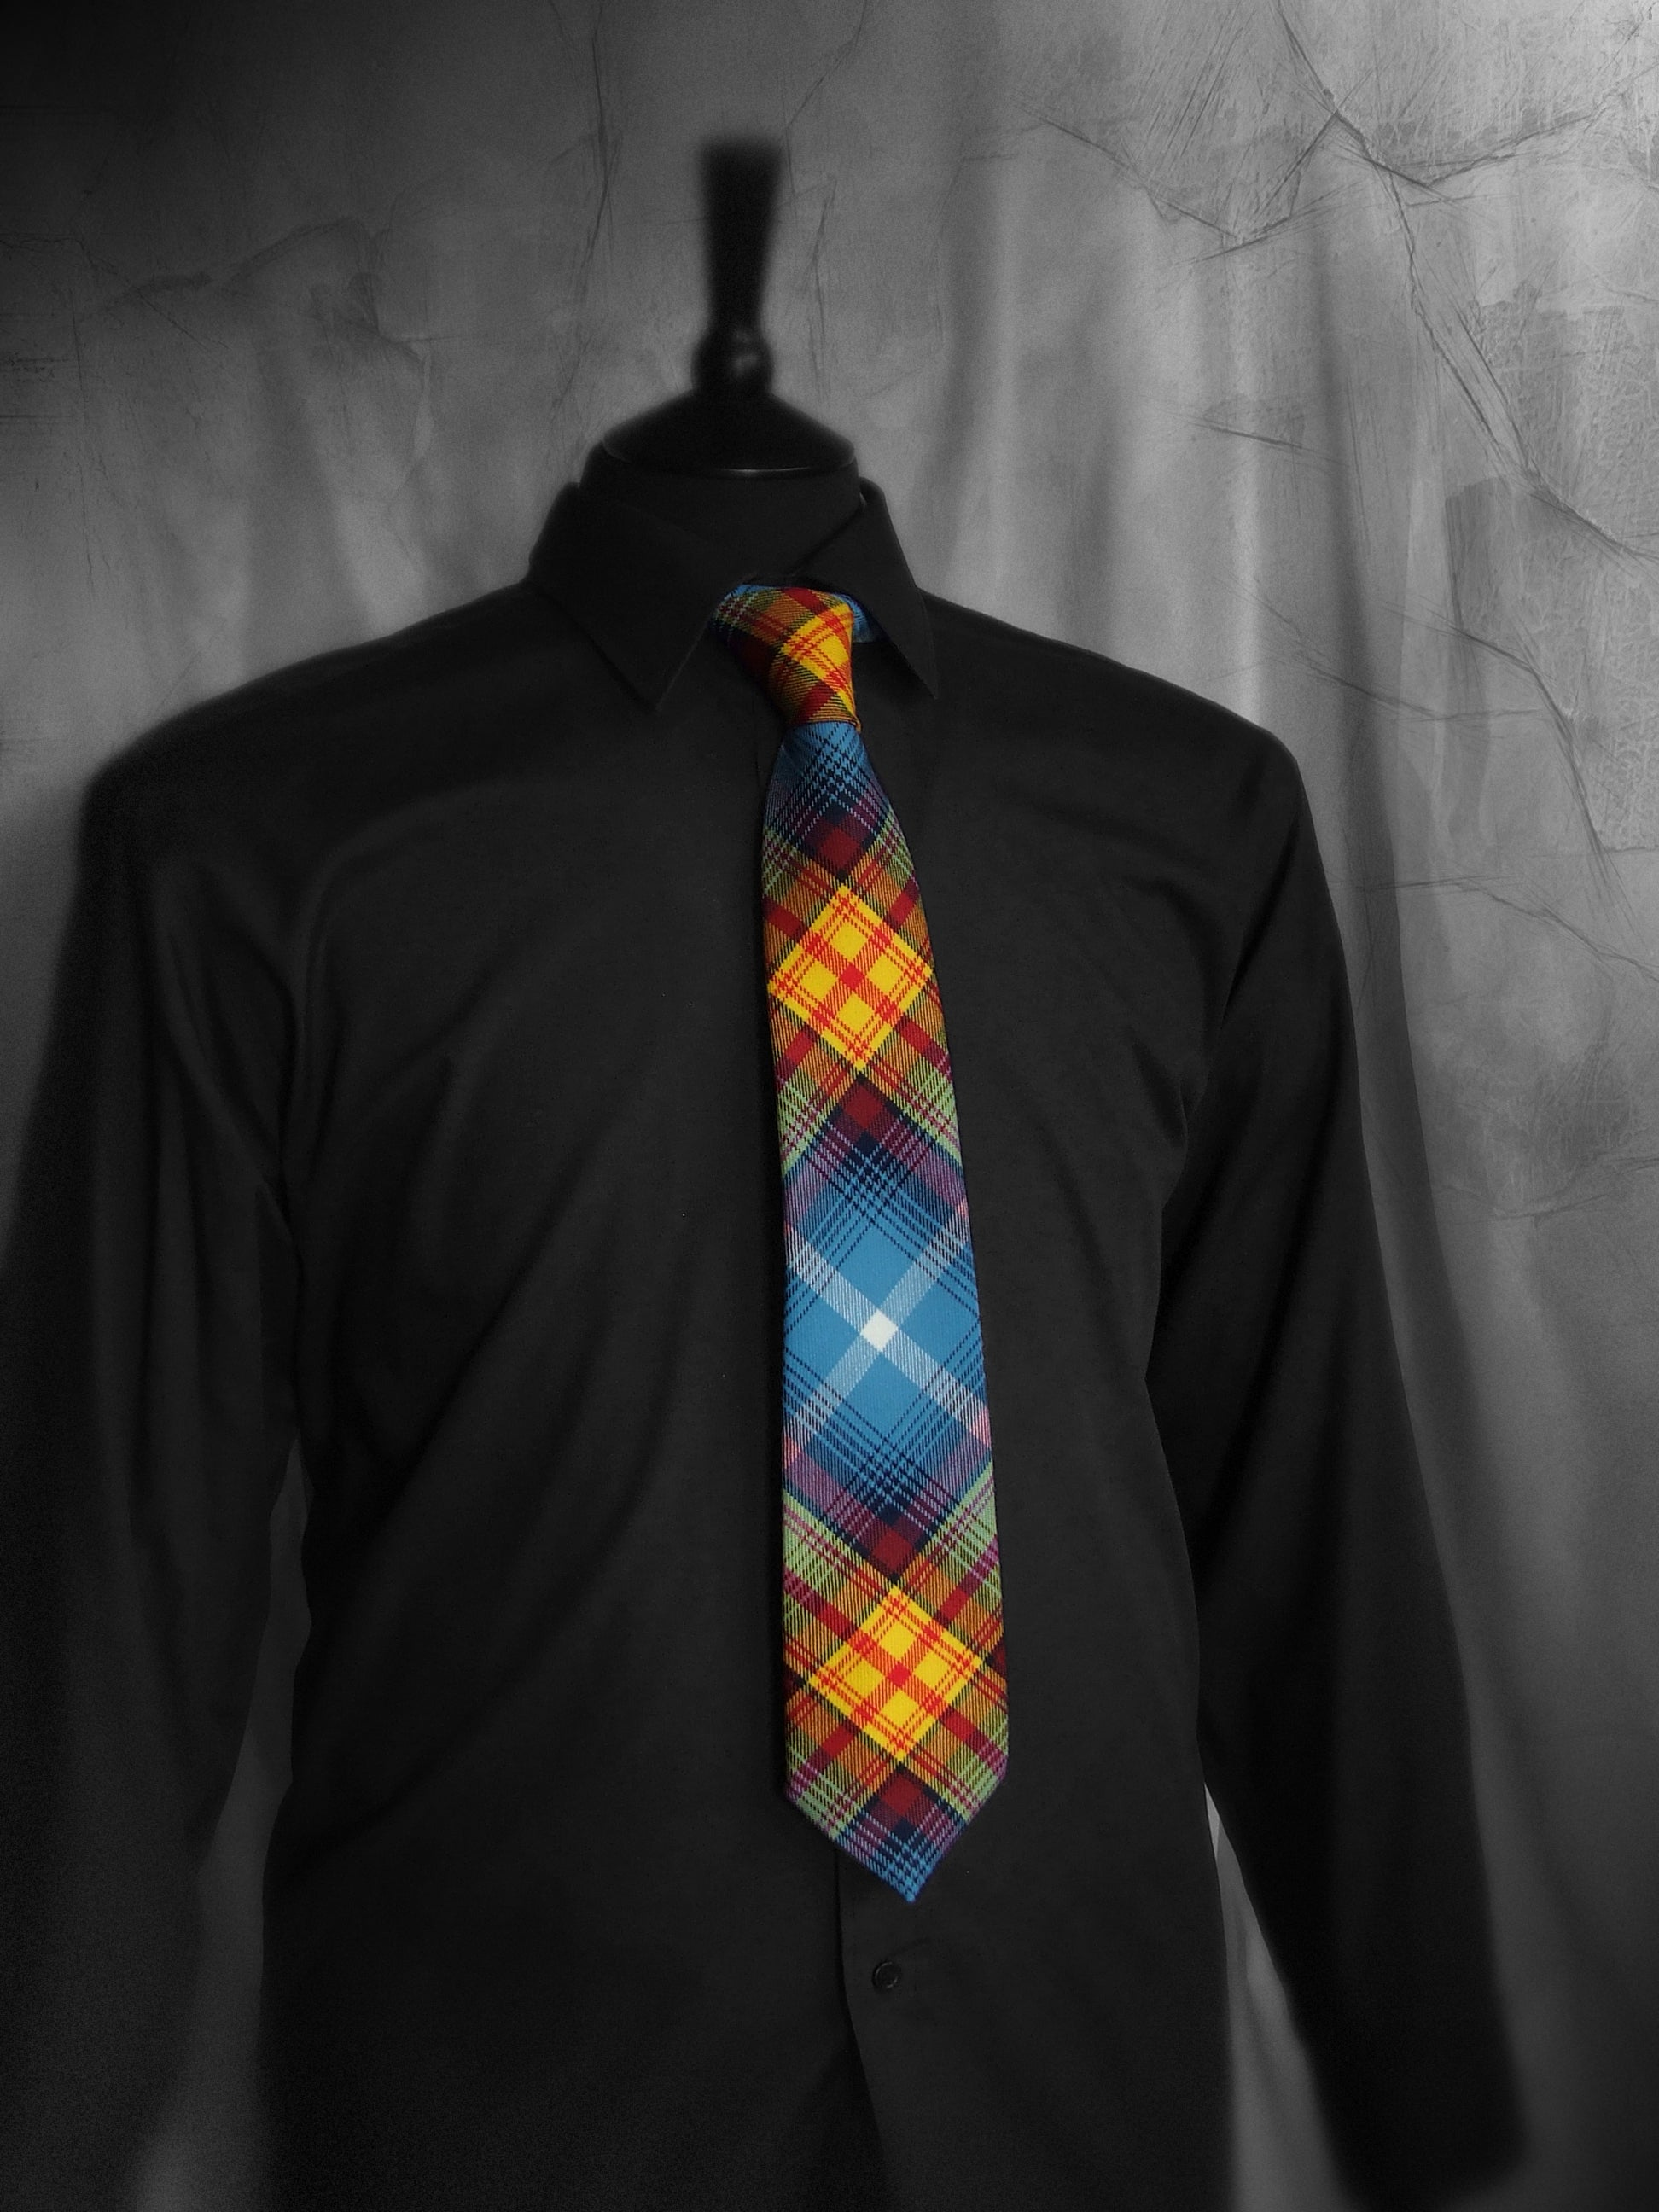 Scottish Indy Tartan Neck Tie